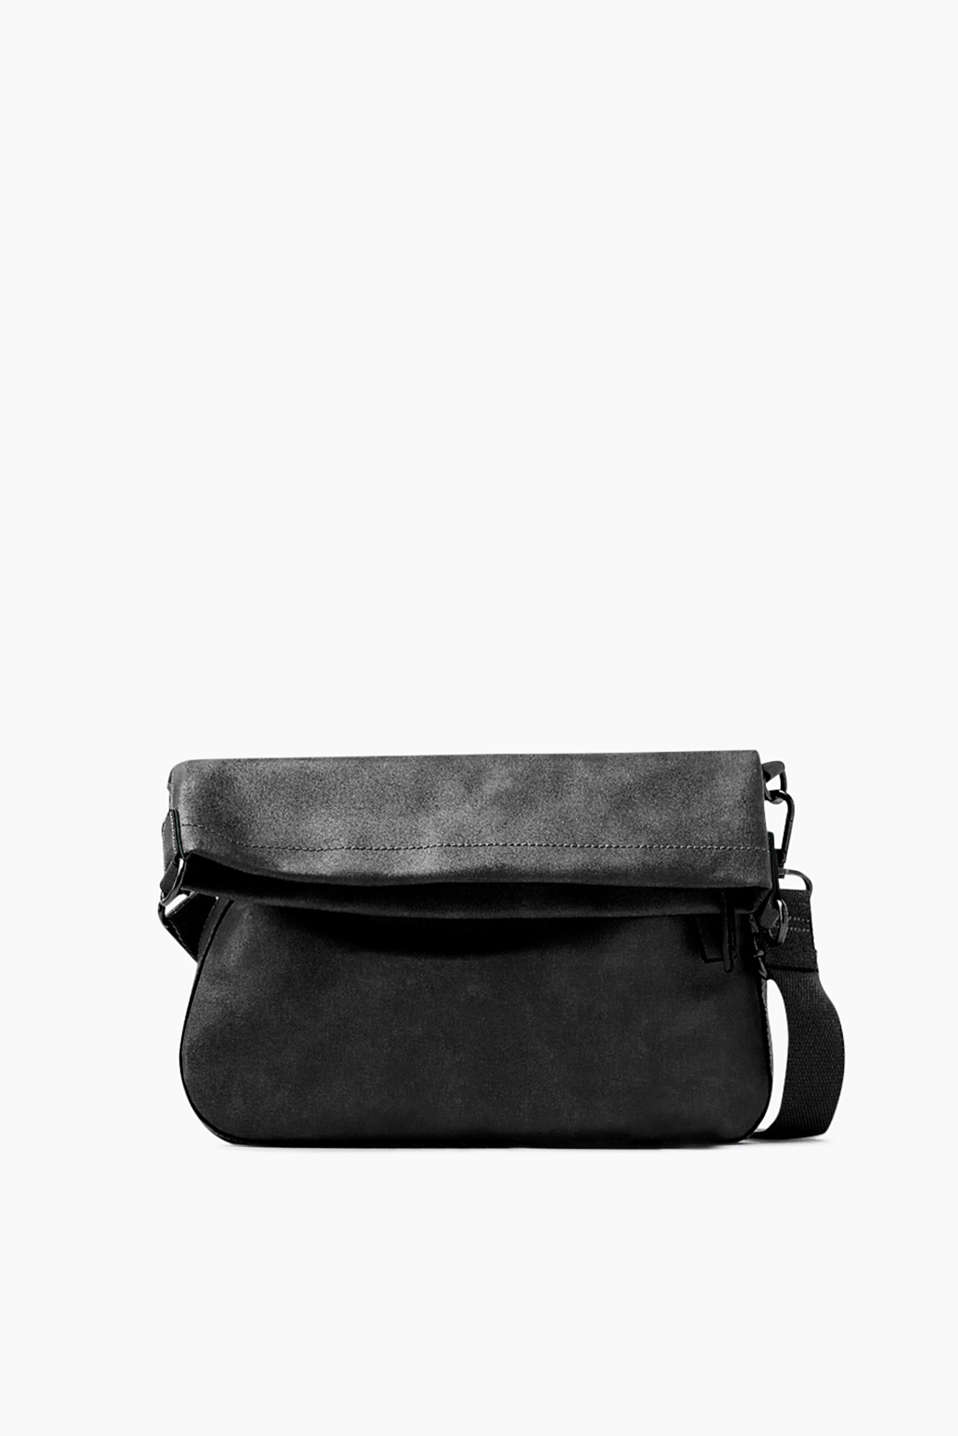 Flat shoulder bag in faux leather with an additional zip compartment and an adjustable height